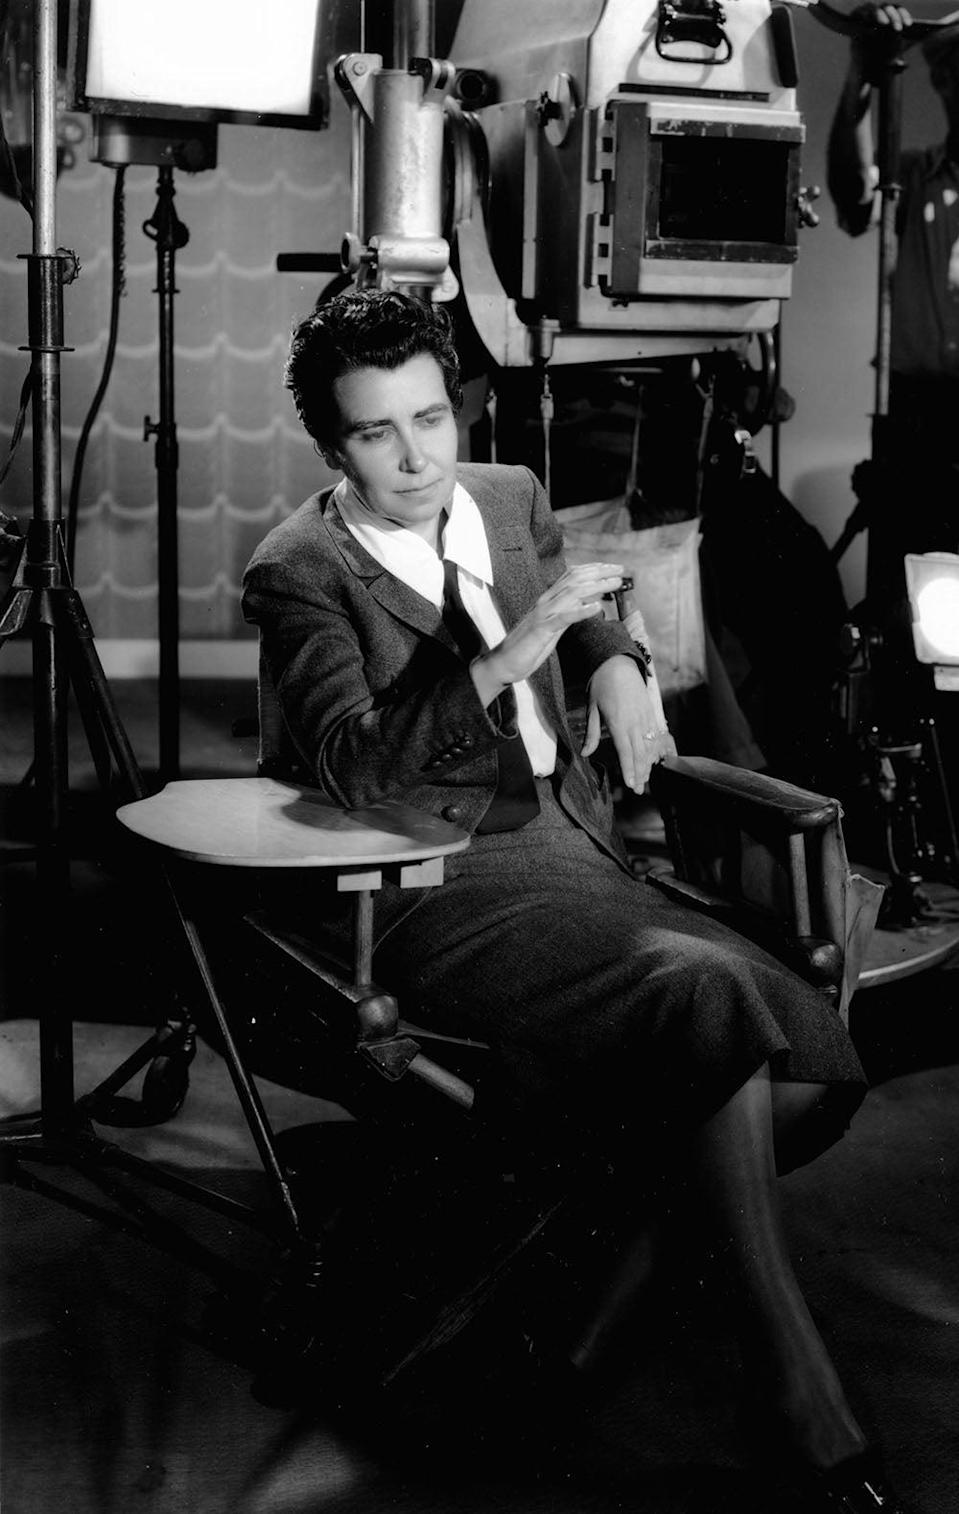 Running the show: Dorothy Arzner photographed on one of her film sets in the 1930s (Kobal/Shutterstock)